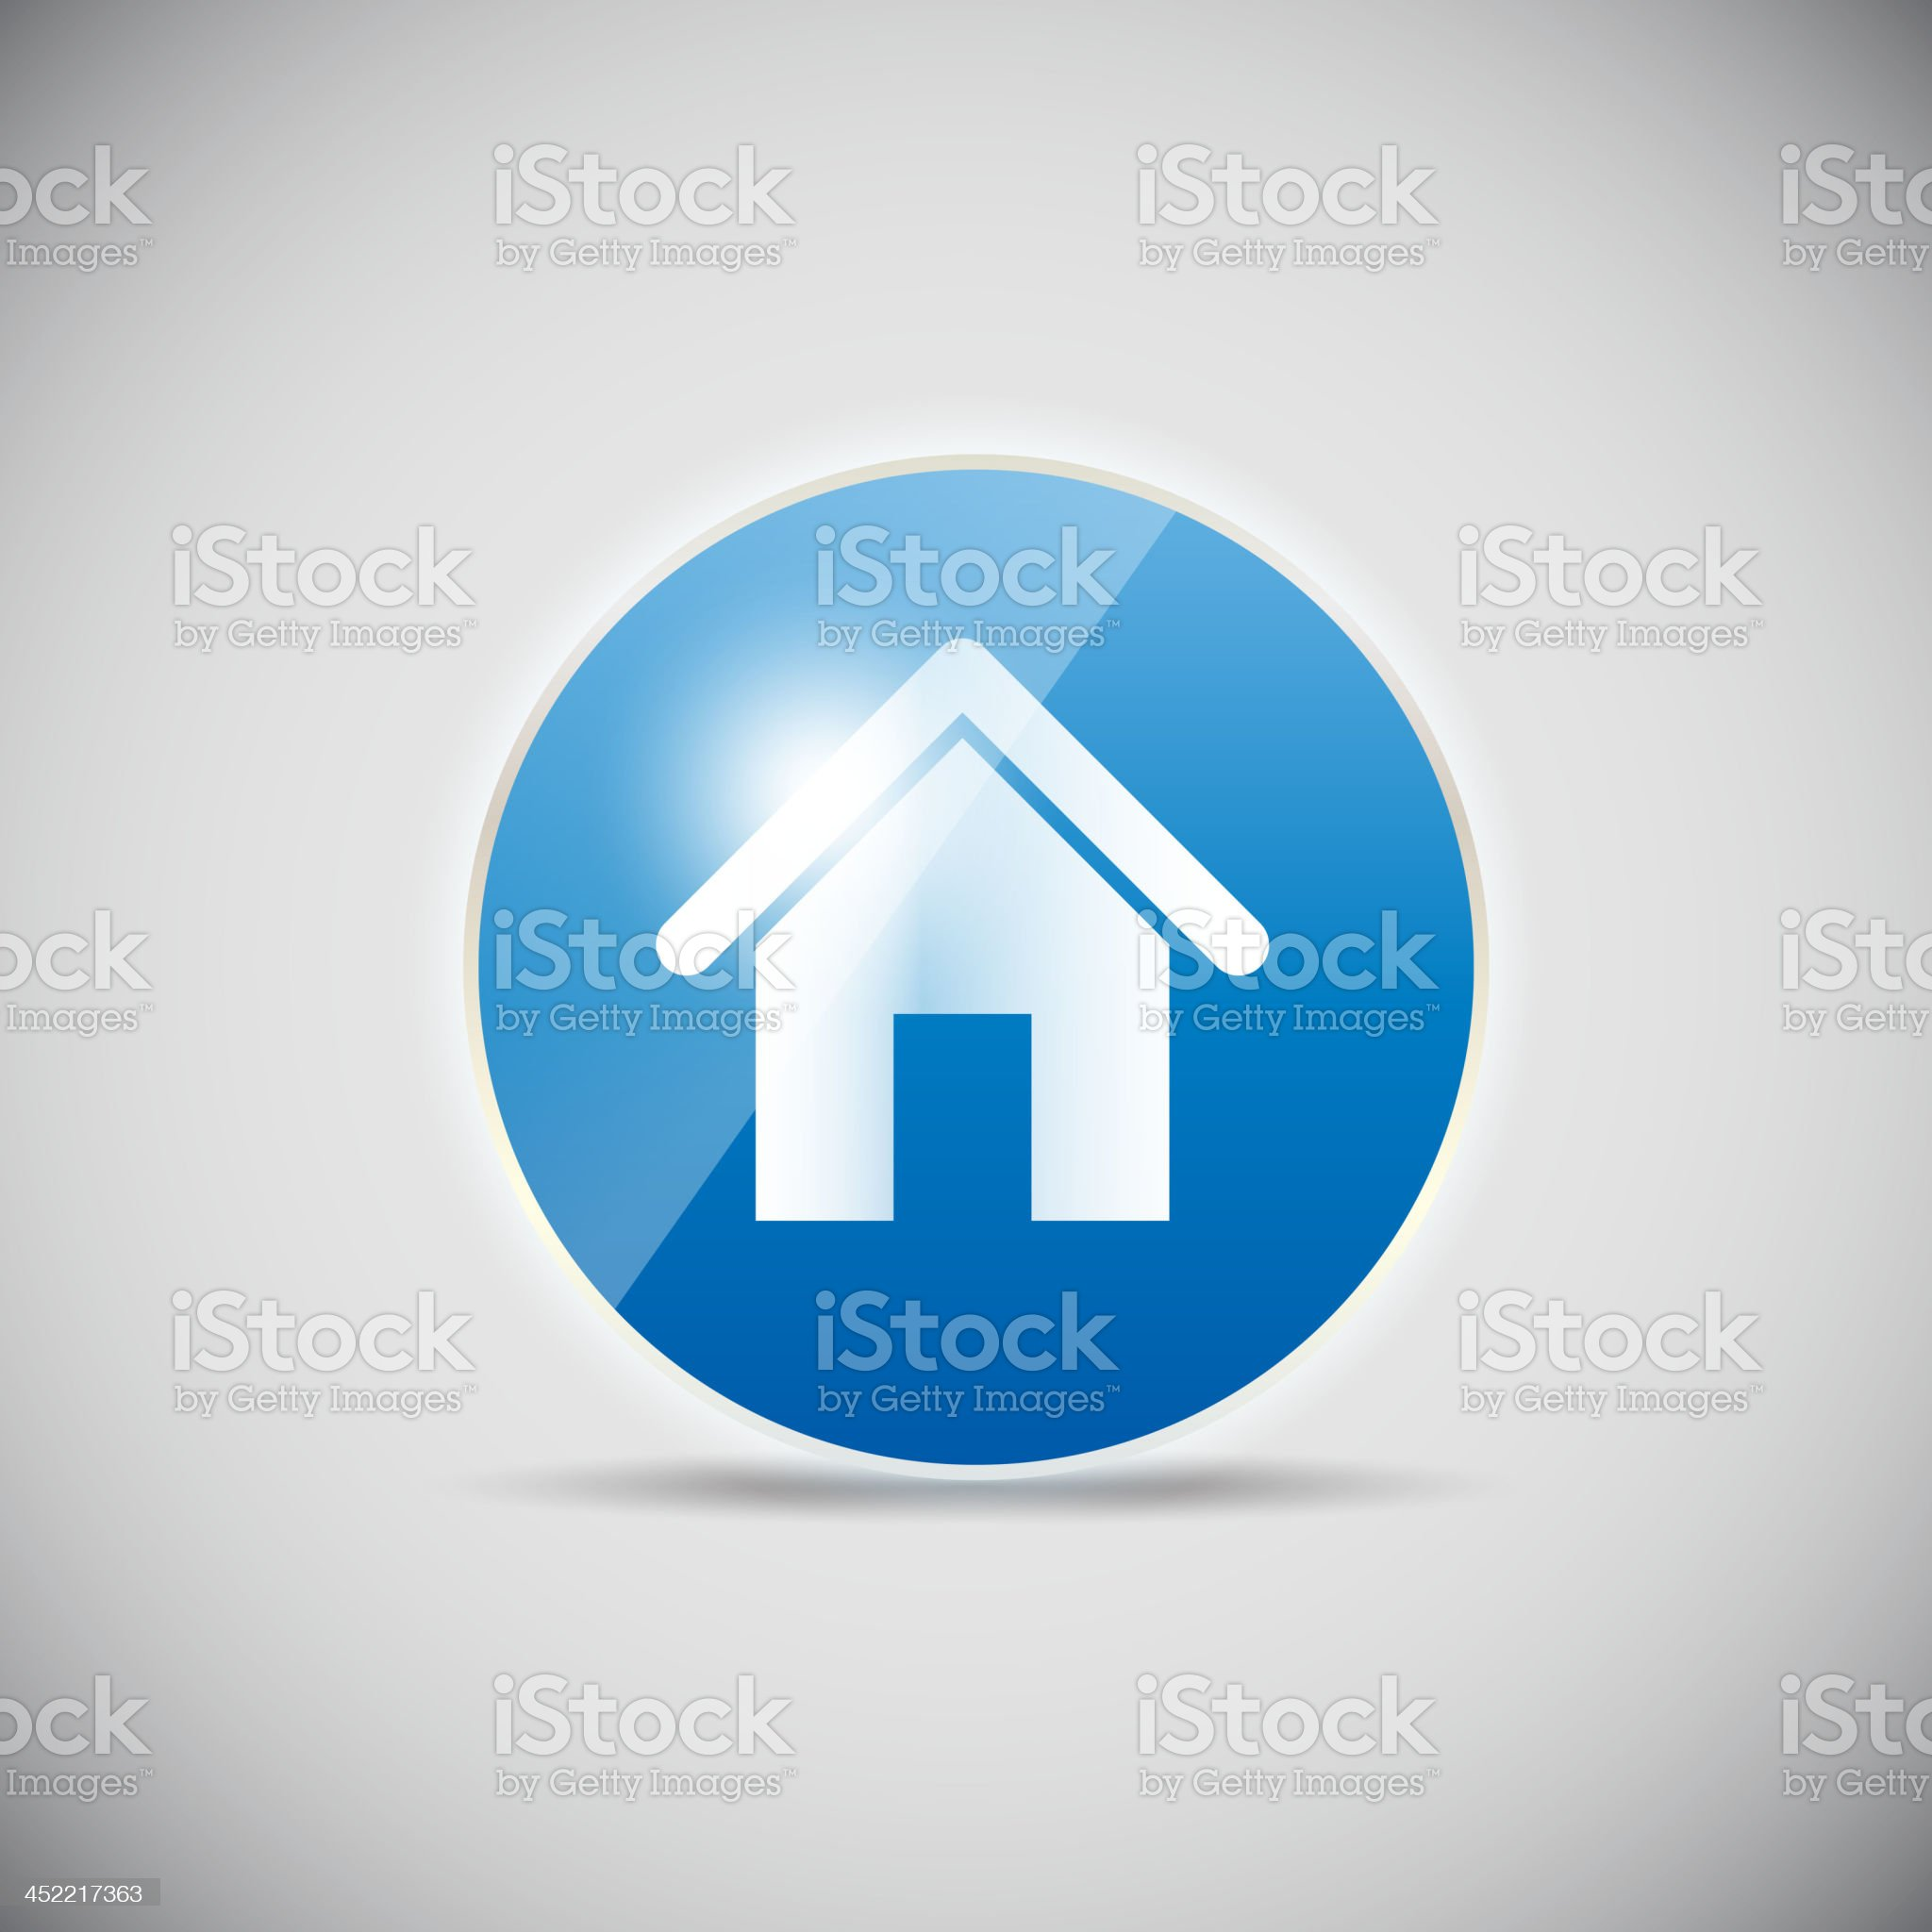 A shiny computer icon illustration on a vector royalty-free stock vector art